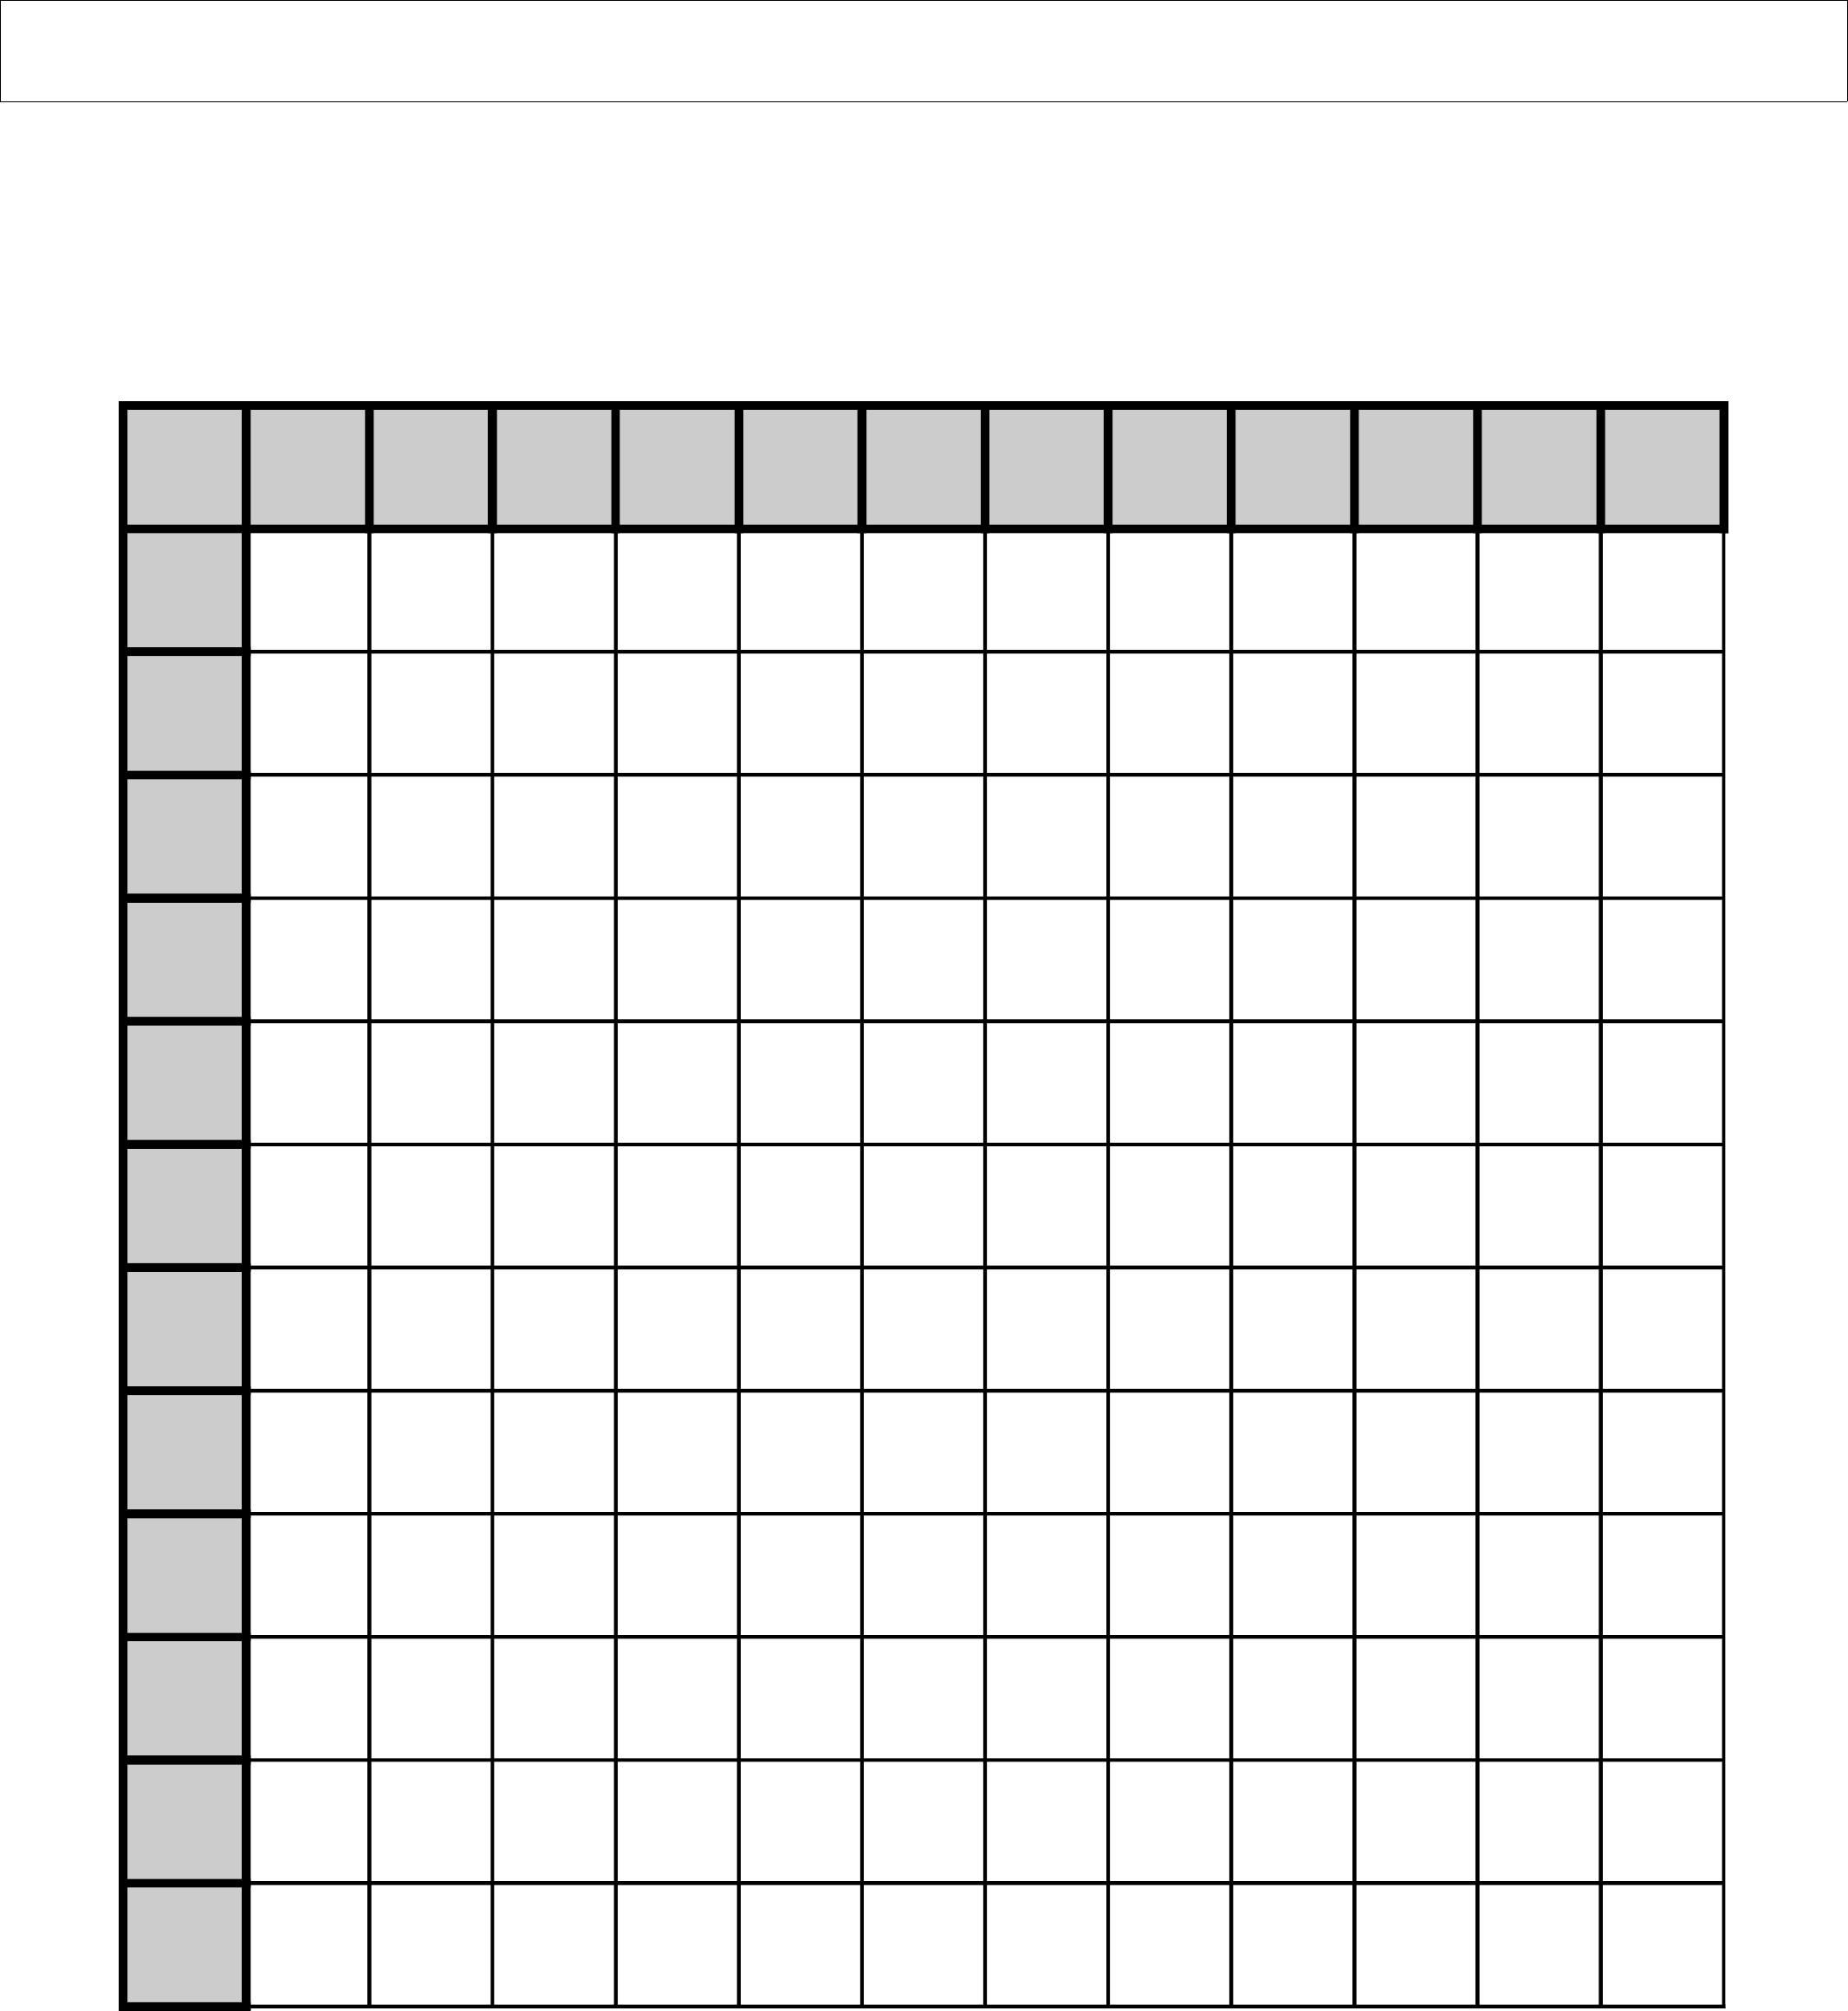 Multiplication Chart Empty Pdf Printable Blank Multiplication Grid Multiplication Chart Pinterest Multiplication Chart Multiplication Table Multiplication Grid